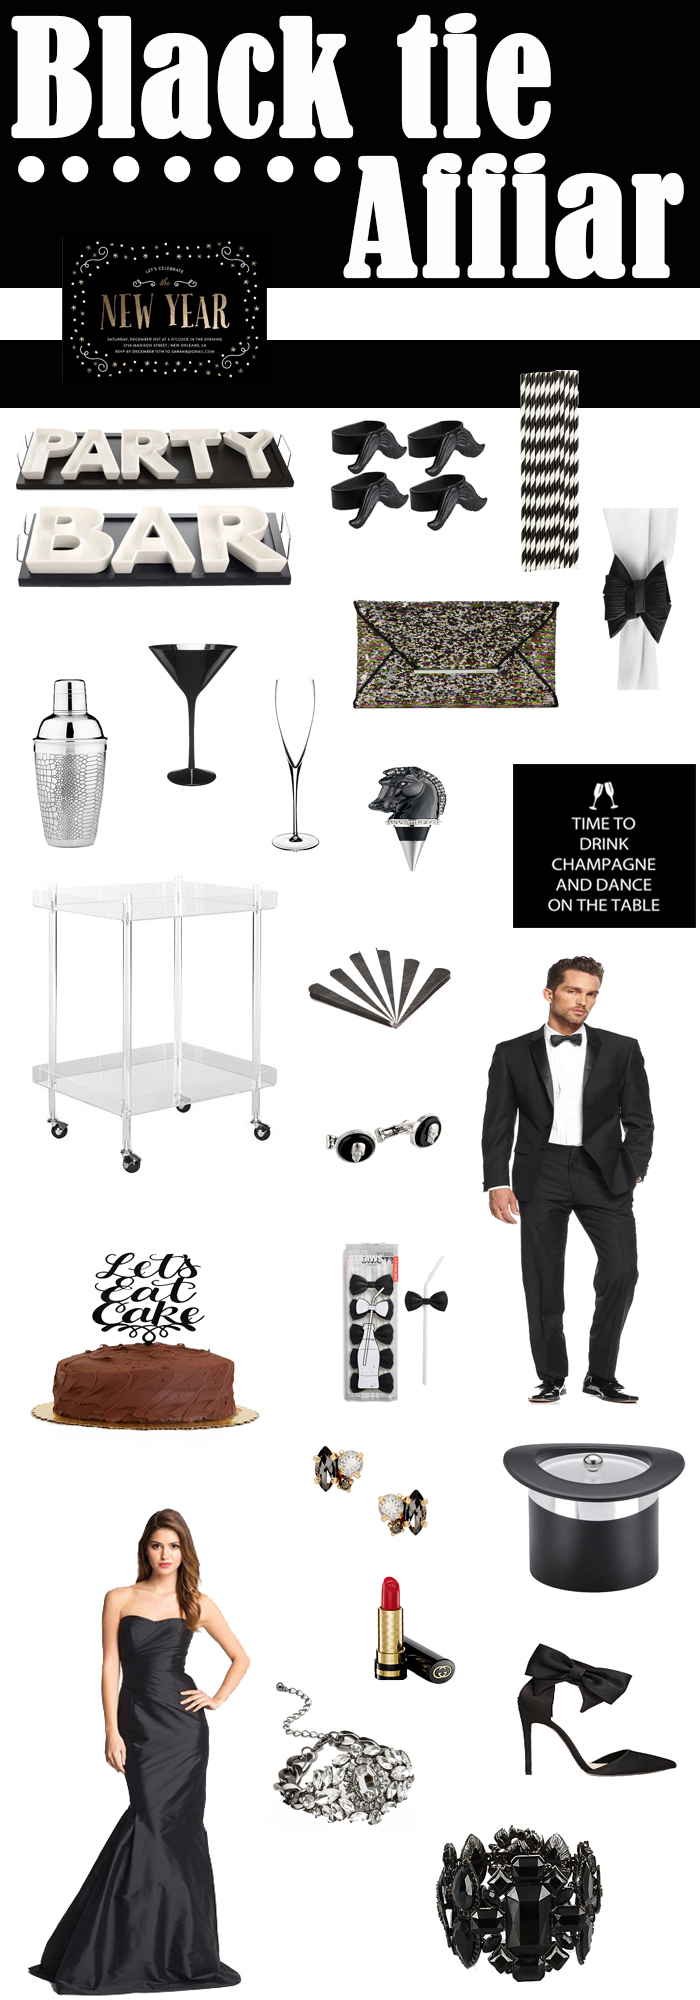 Nye Dinner Party Ideas Part - 49: Looking For A Fun NYE Party Idea? How About A Black Tie Affair Themed NYE